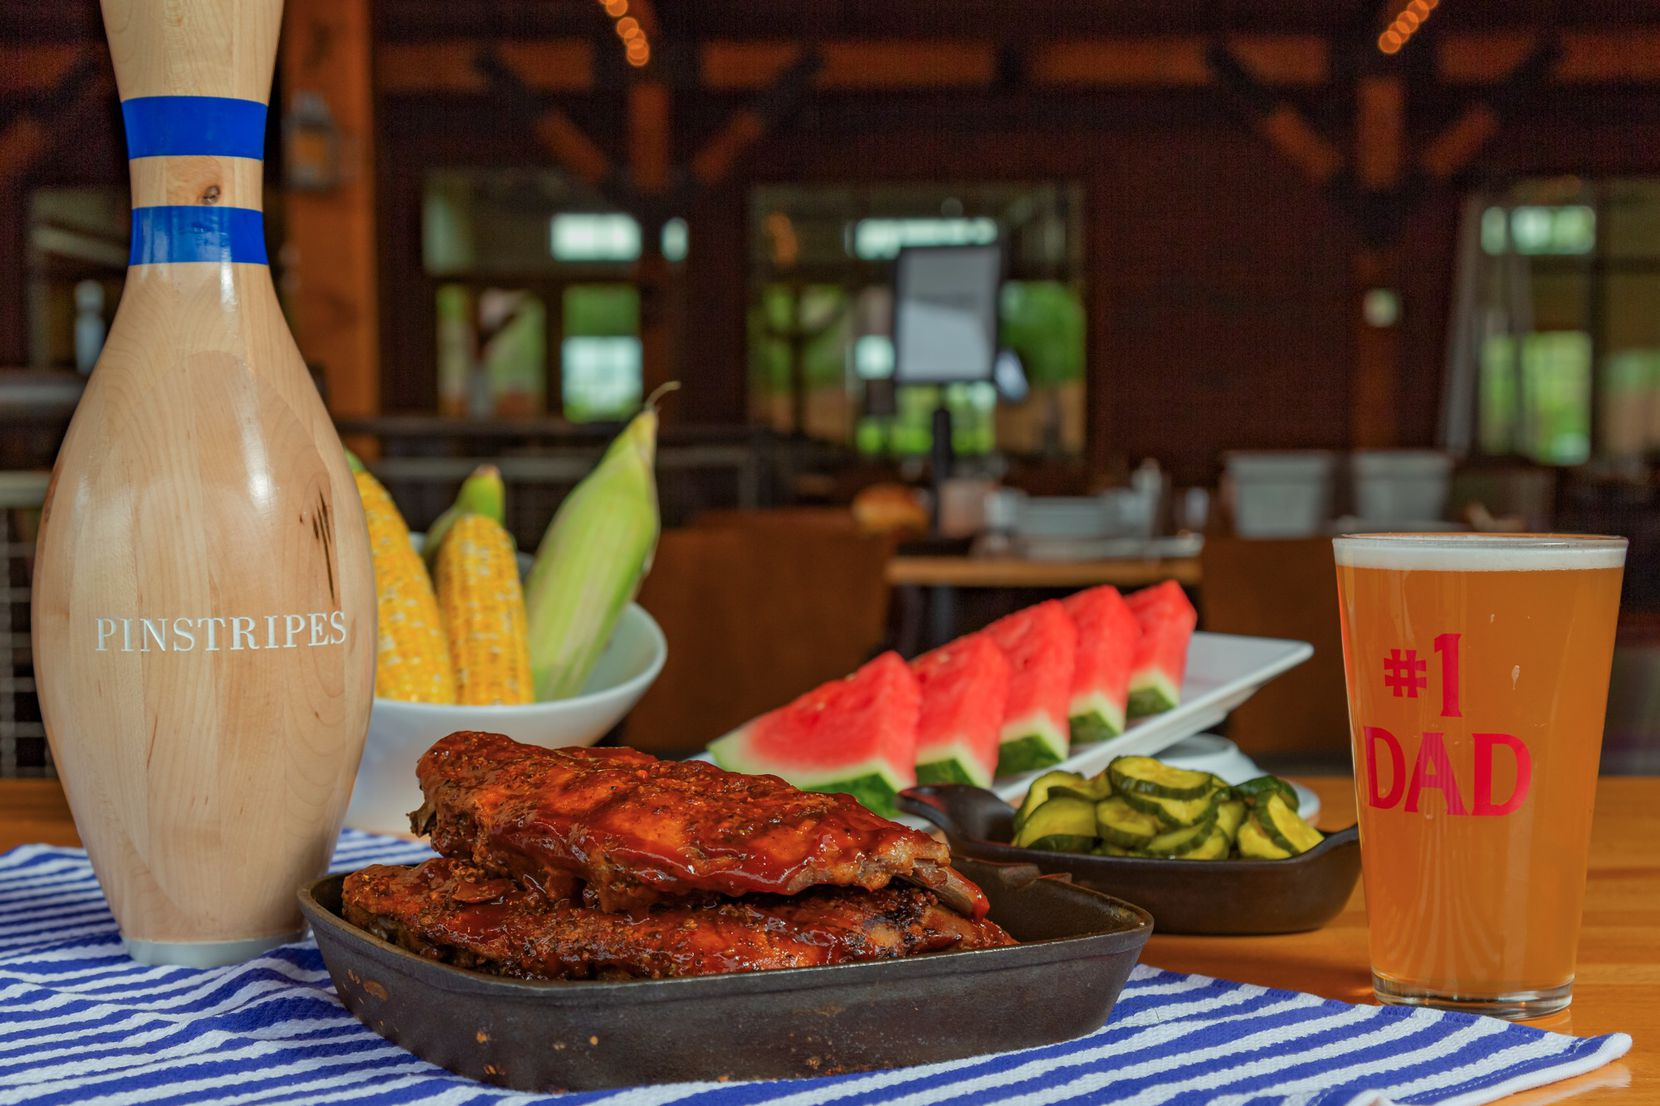 Pinstripes's Father's Day all-you-can-eat barbecue menu includes balsamic barbecue ribs, grilled corn on the cob, fresh watermelon slices and pickles.